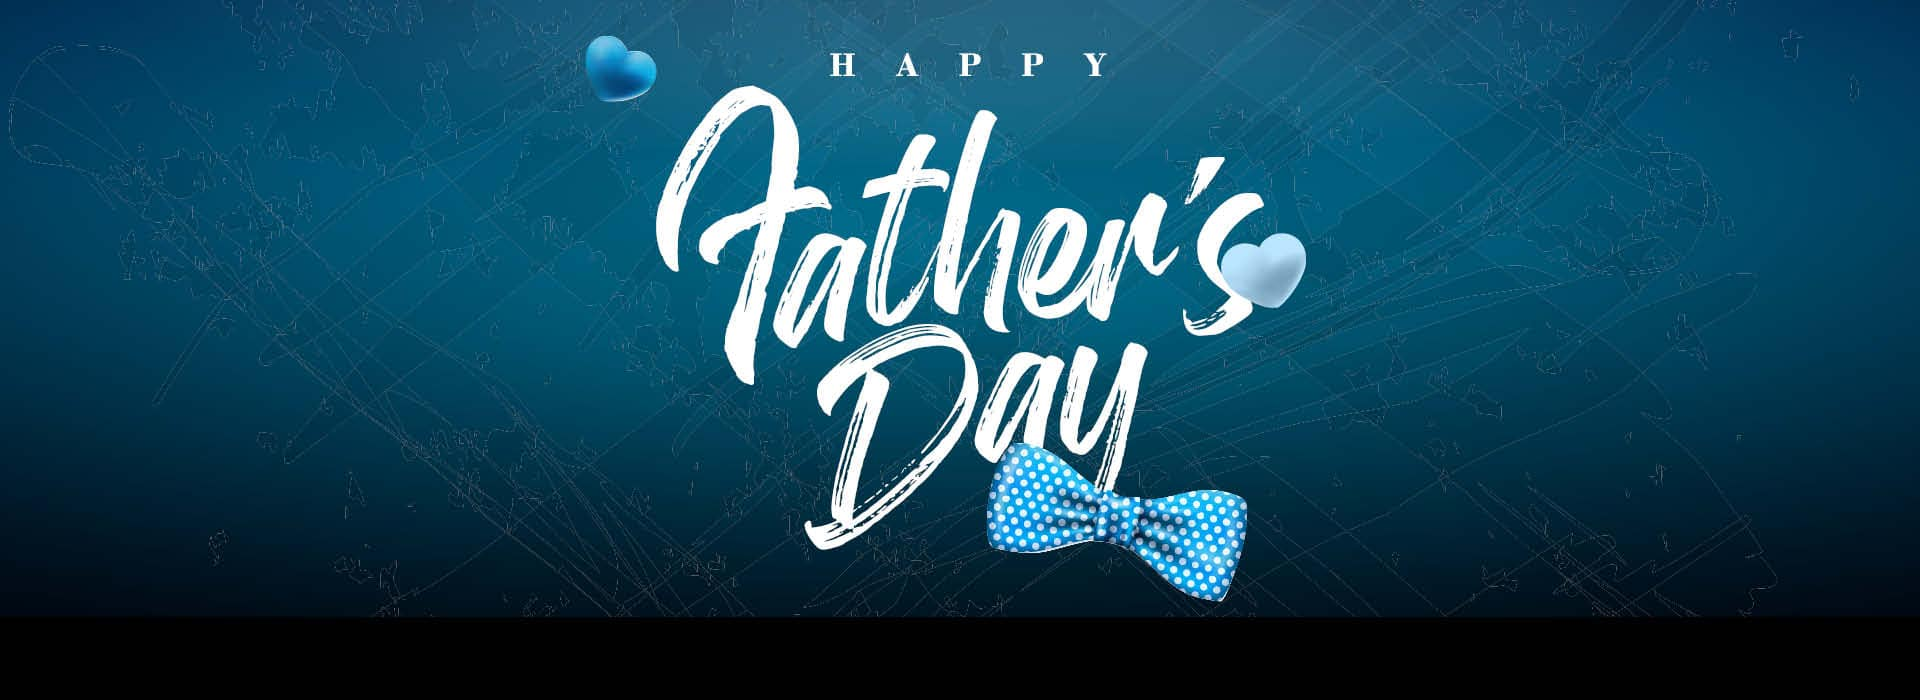 Happy_Fathers_Day_Banner_Desktop